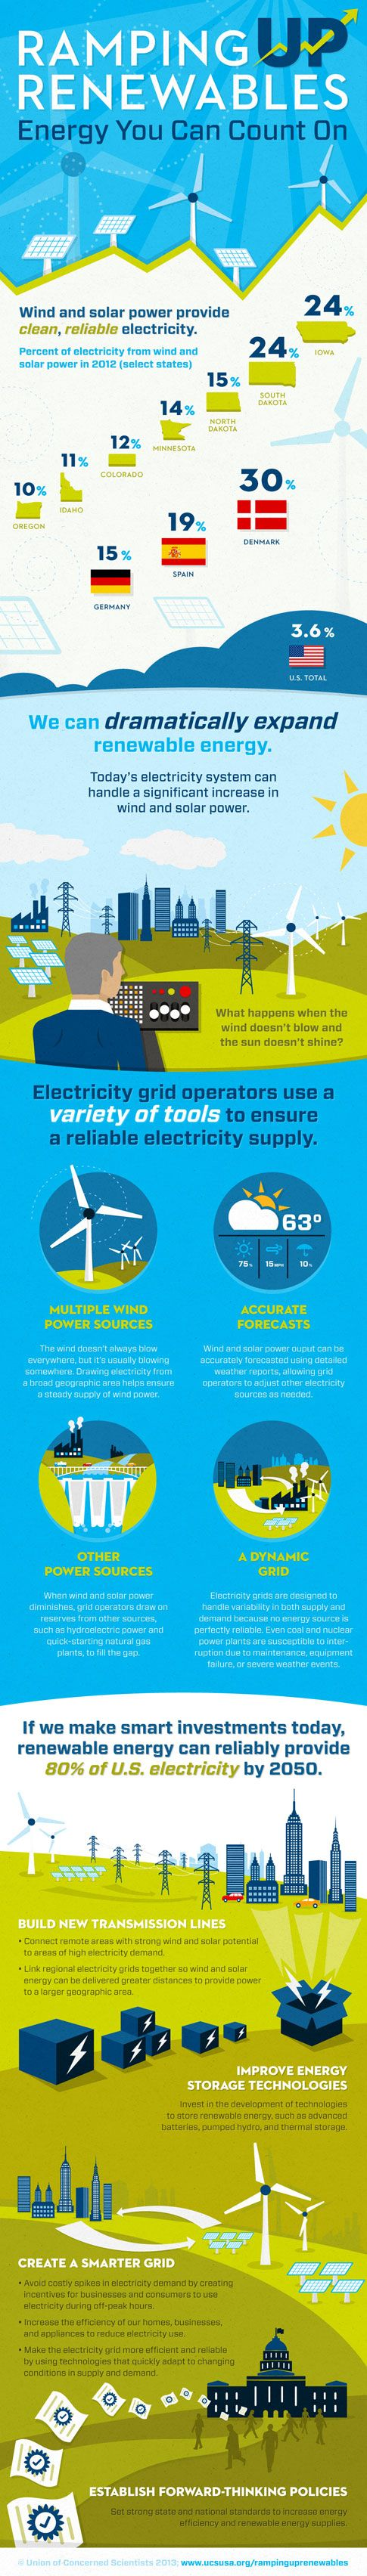 Infographic: Ramping Up Renewable Energy | Union of Concerned Scientists